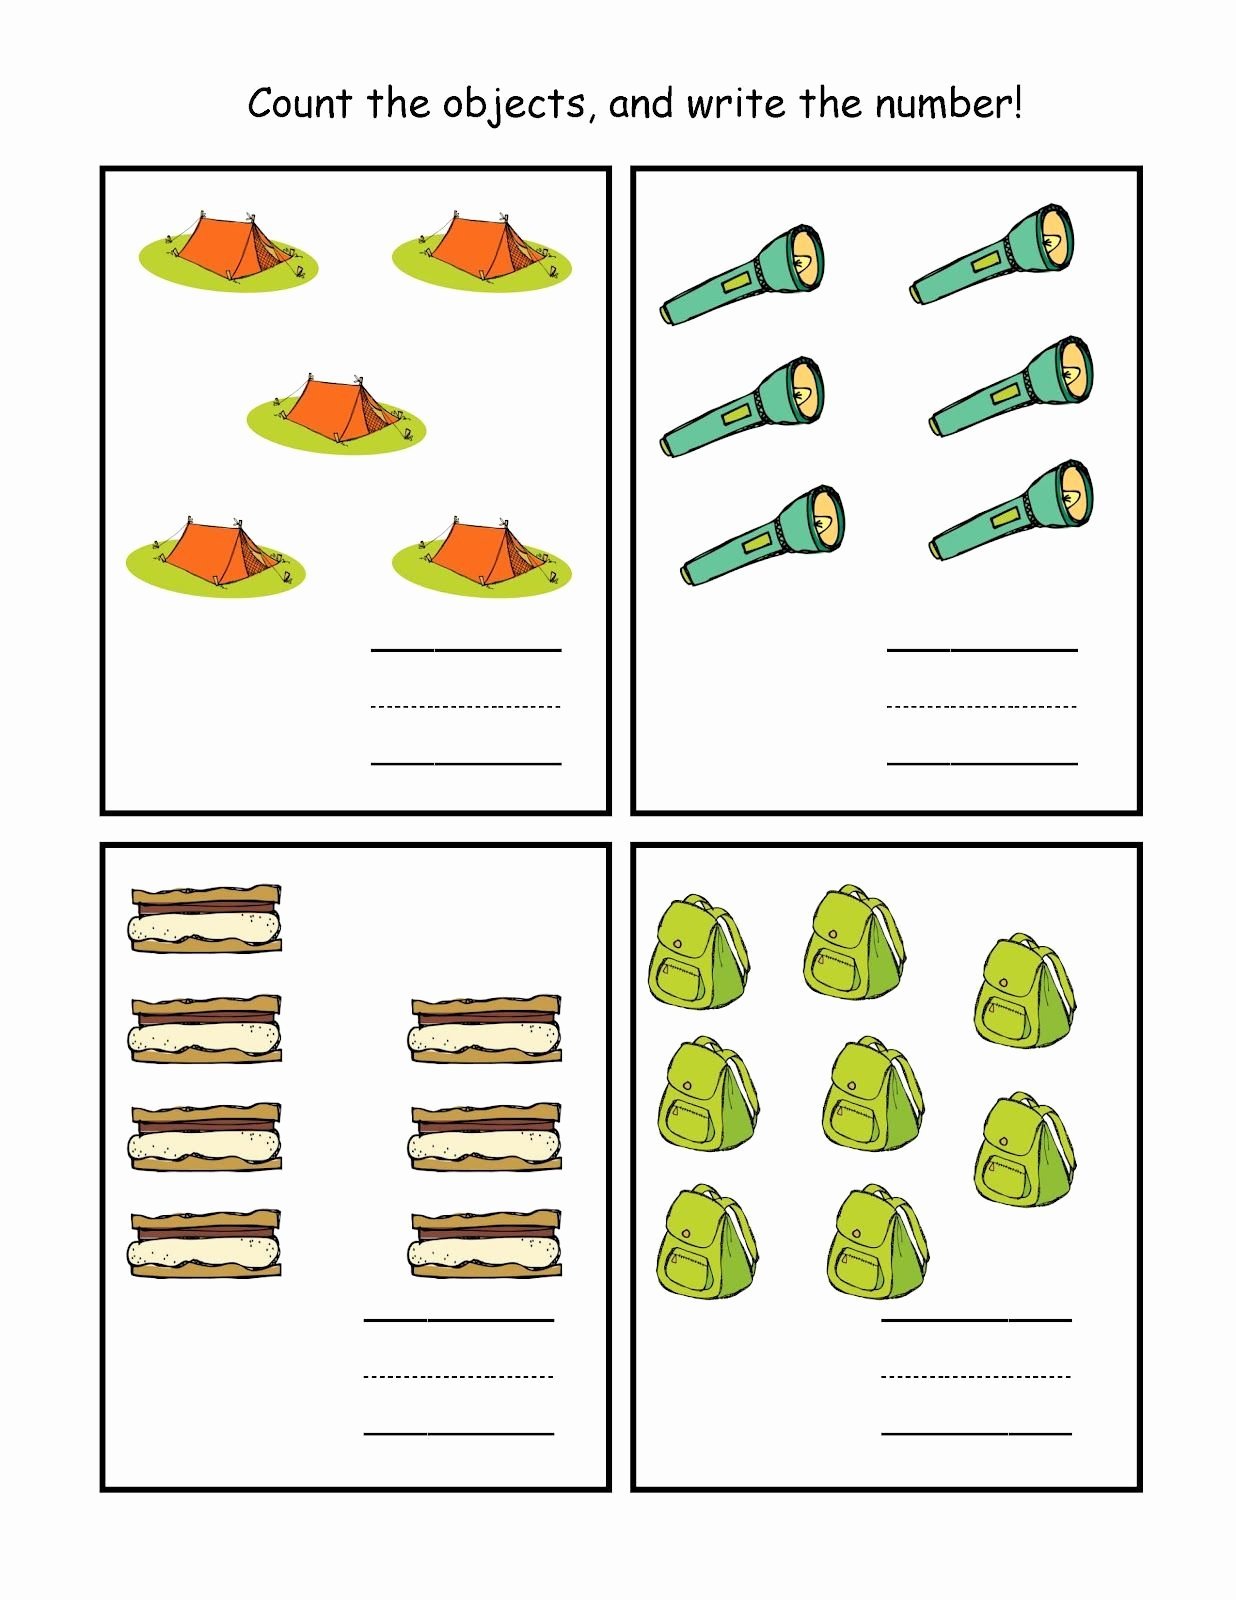 Camping Worksheets for Preschoolers Ideas Camping 5 8 1 236—1 600 Pixels